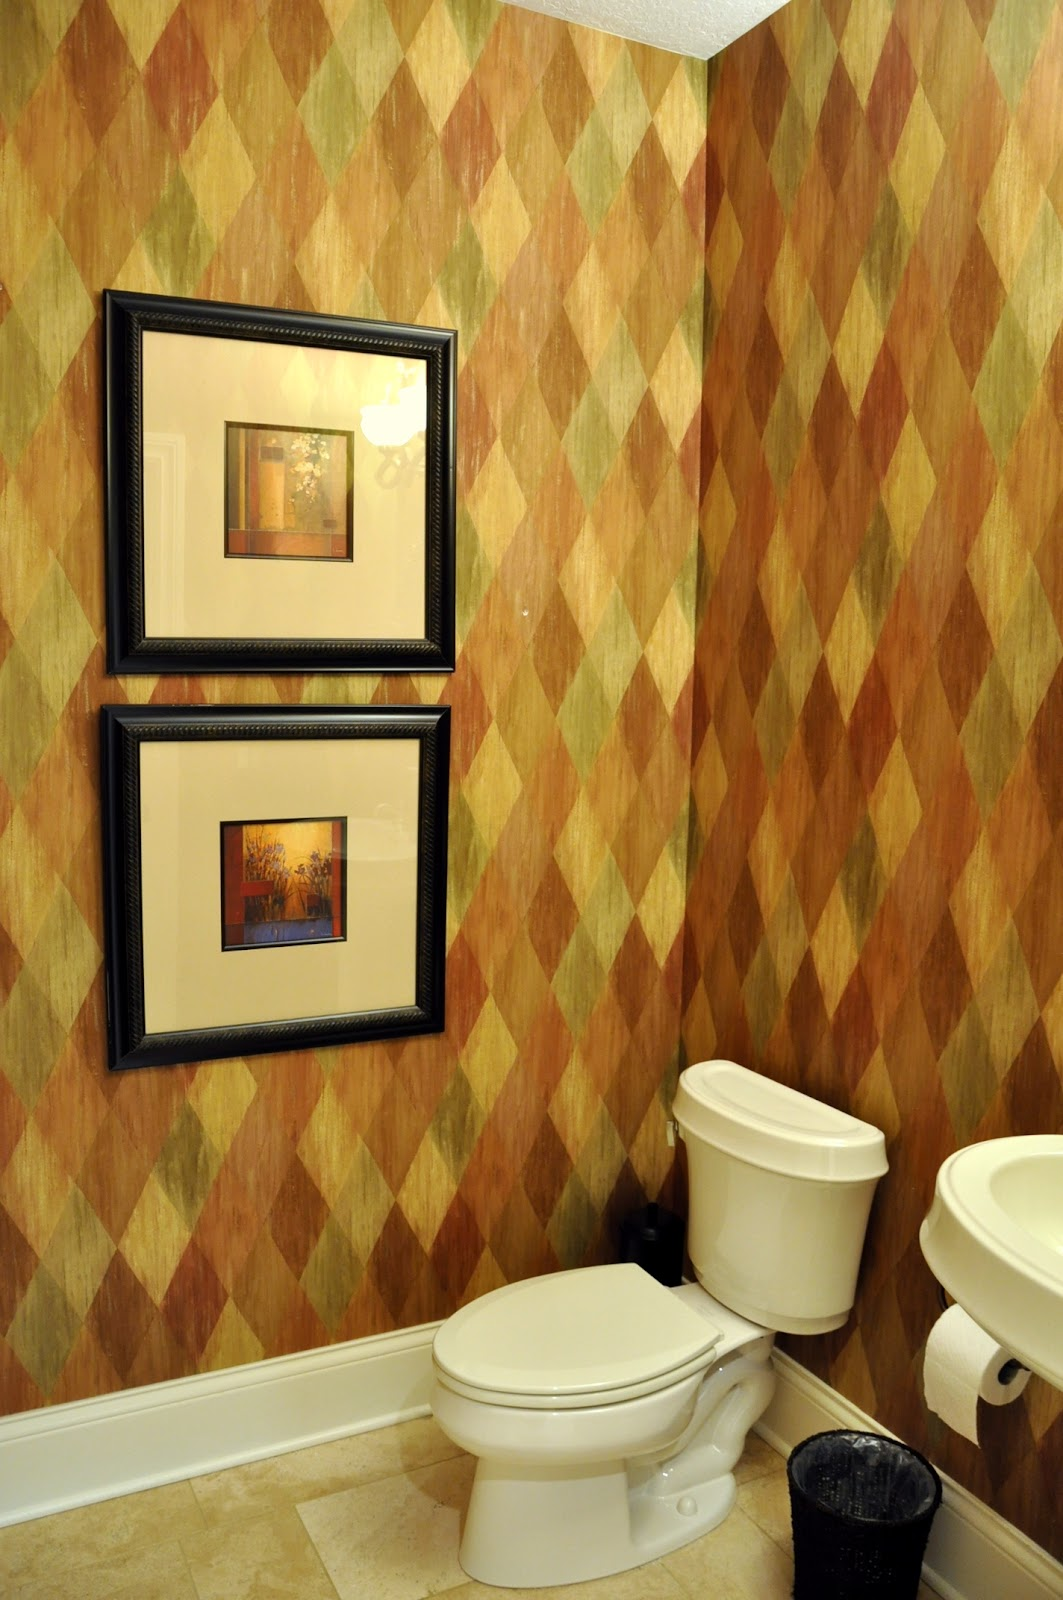 Exelent Powder Room Wall Ideas Image - The Wall Art Decorations ...